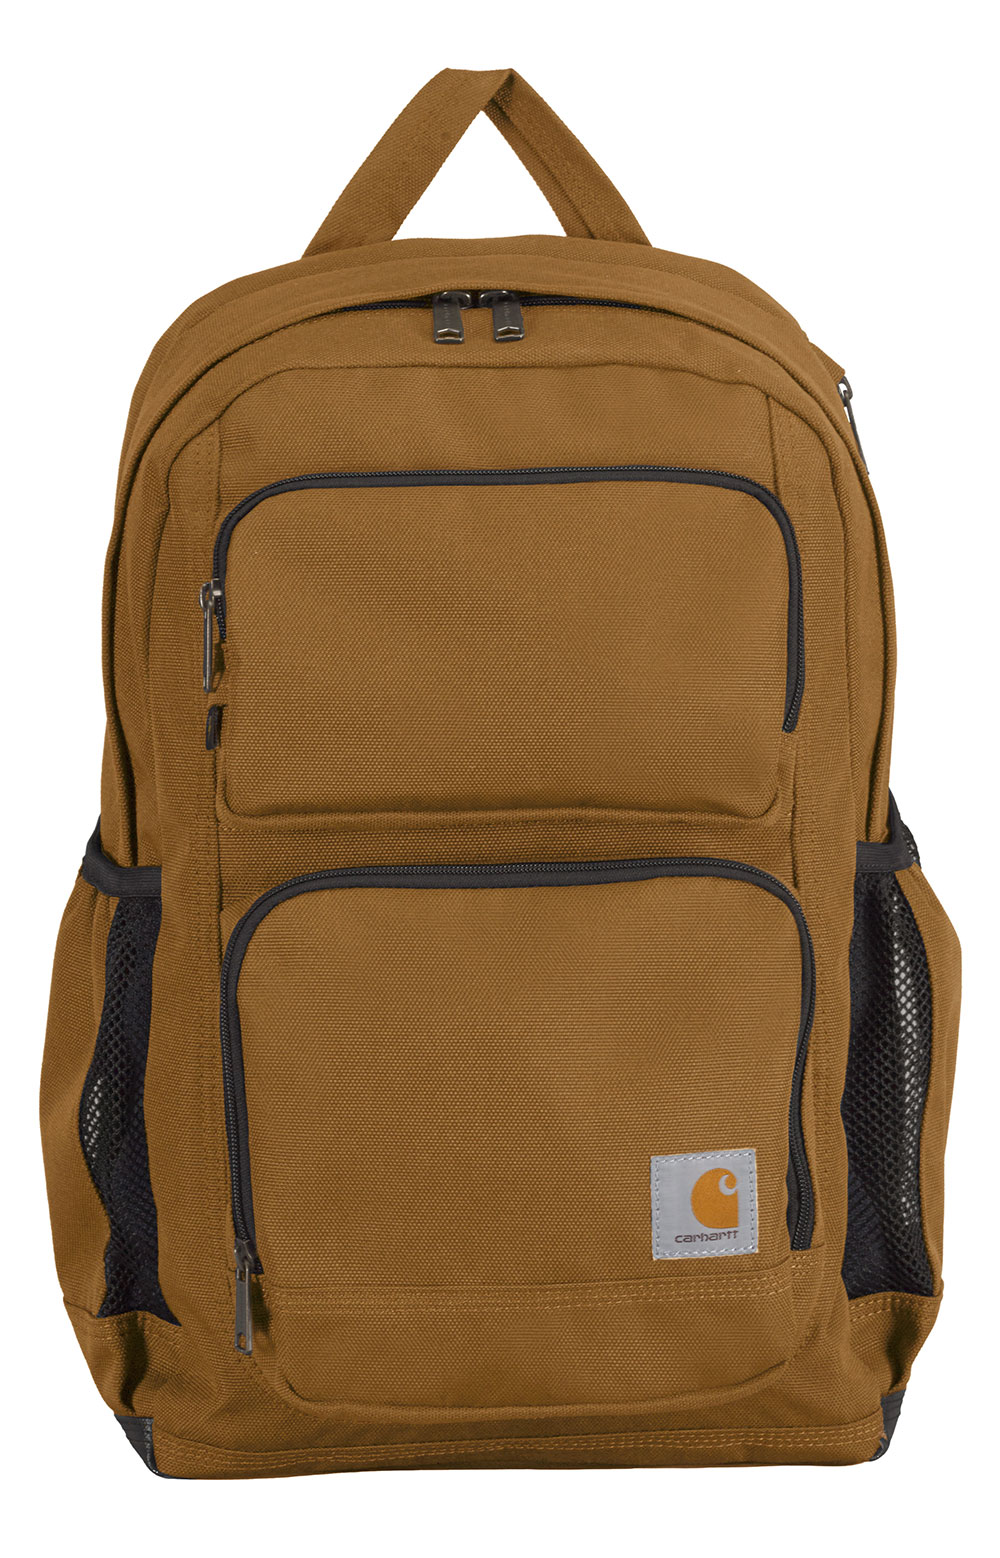 Force Advanced 28L Laptop Backpack - Carhartt Brown  5